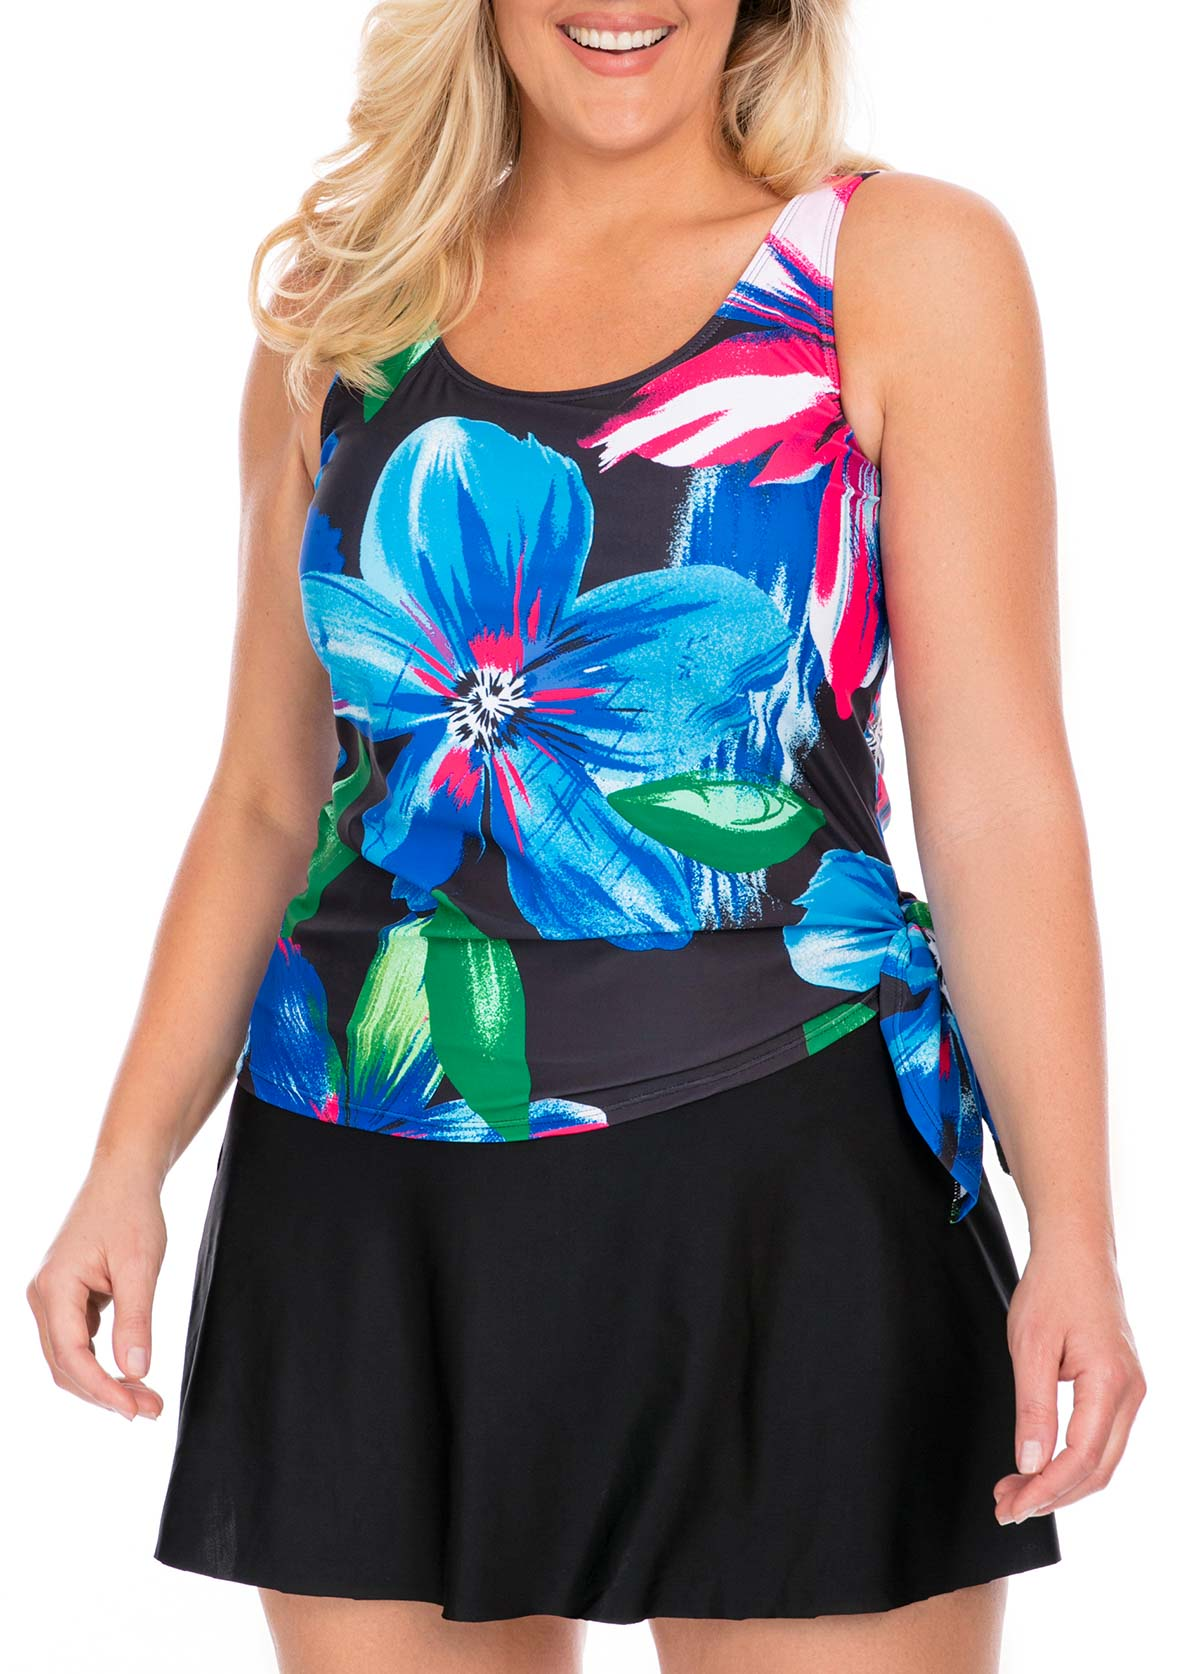 Plus Size Printed Tankini Top and Pantskirt